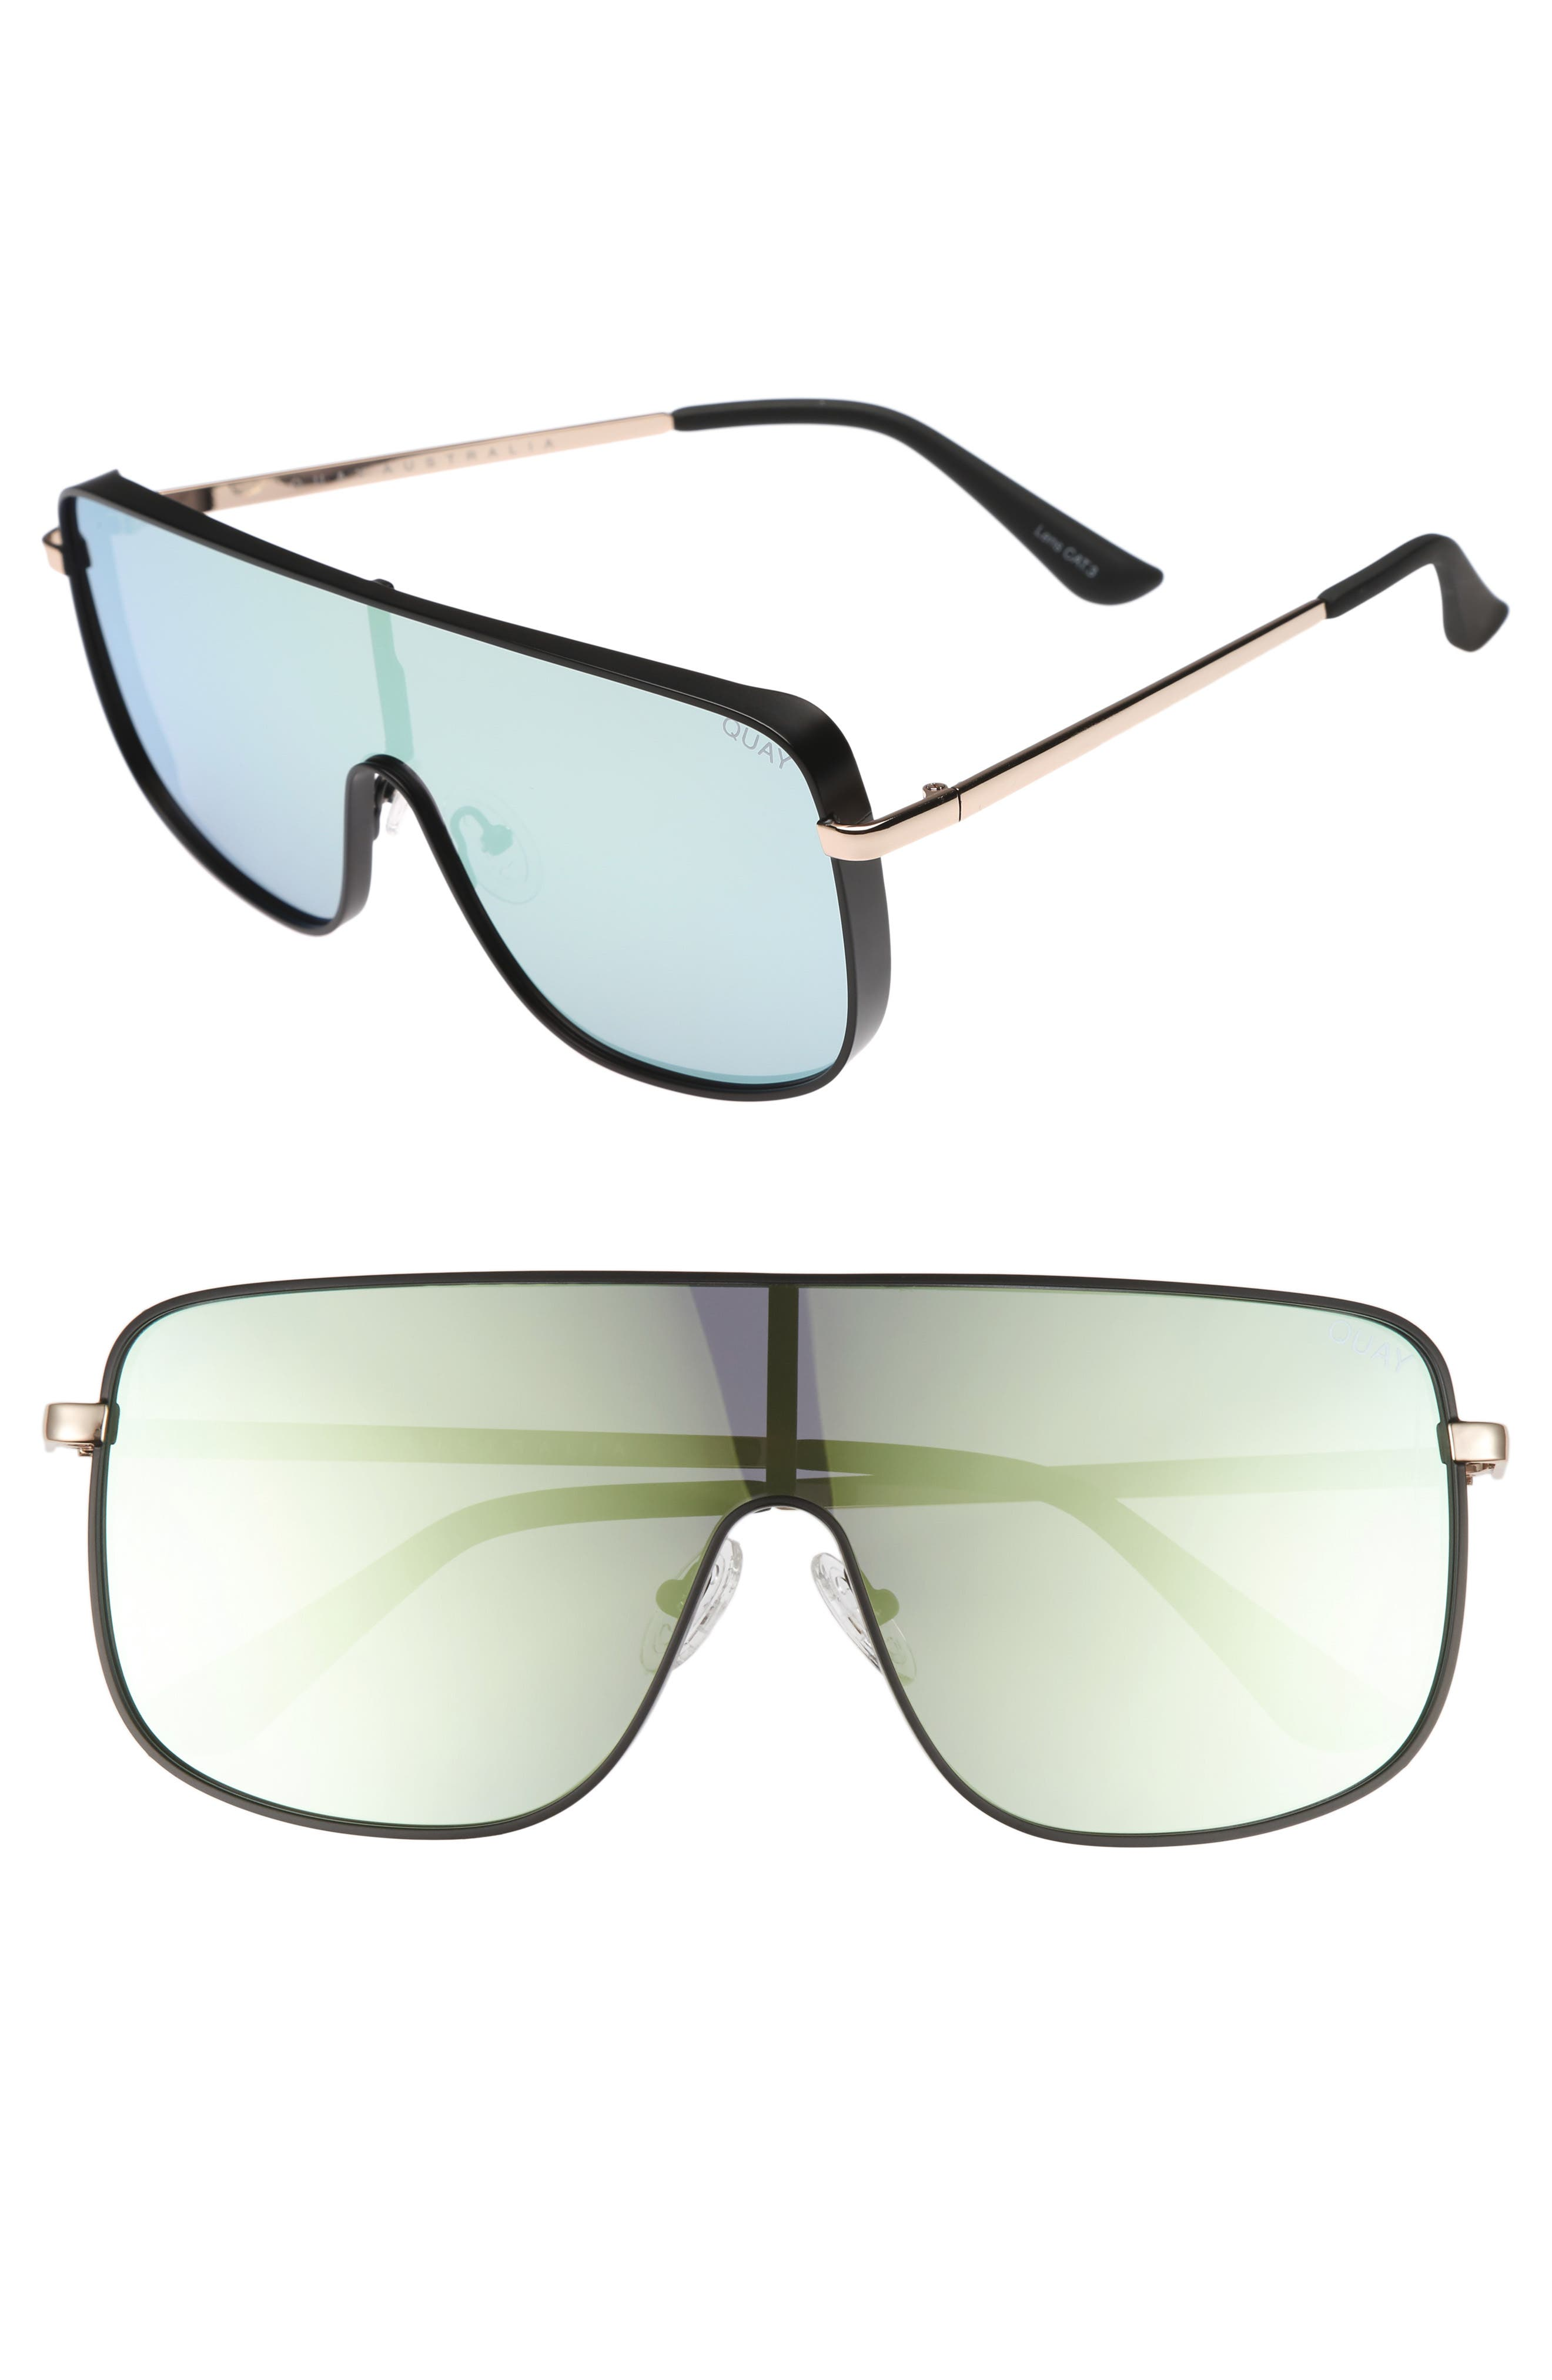 Unbothered 68mm Shield Sunglasses,                         Main,                         color,